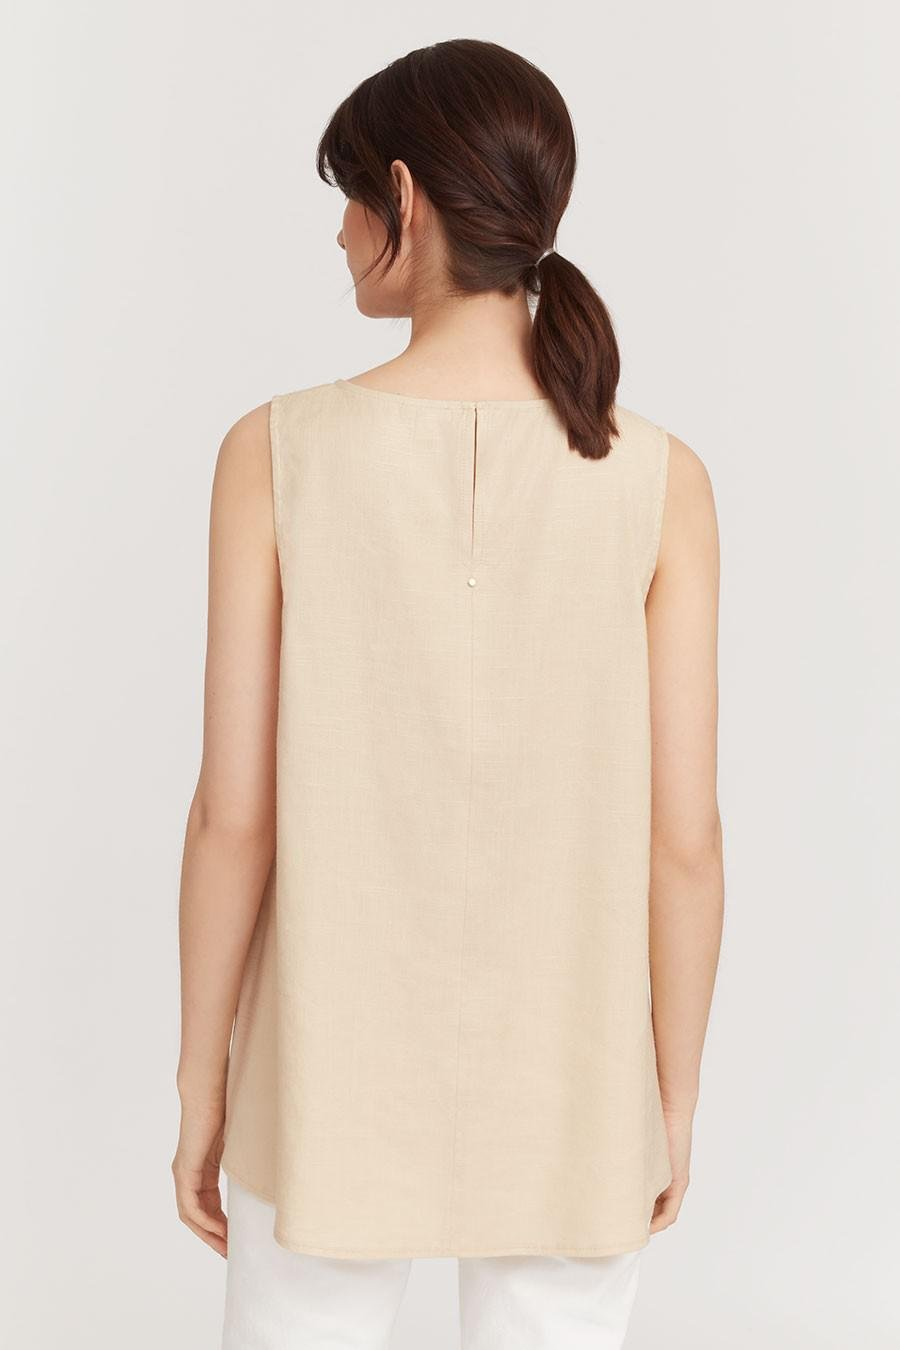 Women's Linen Draped-Front Shell Top in Sand | Size: 2